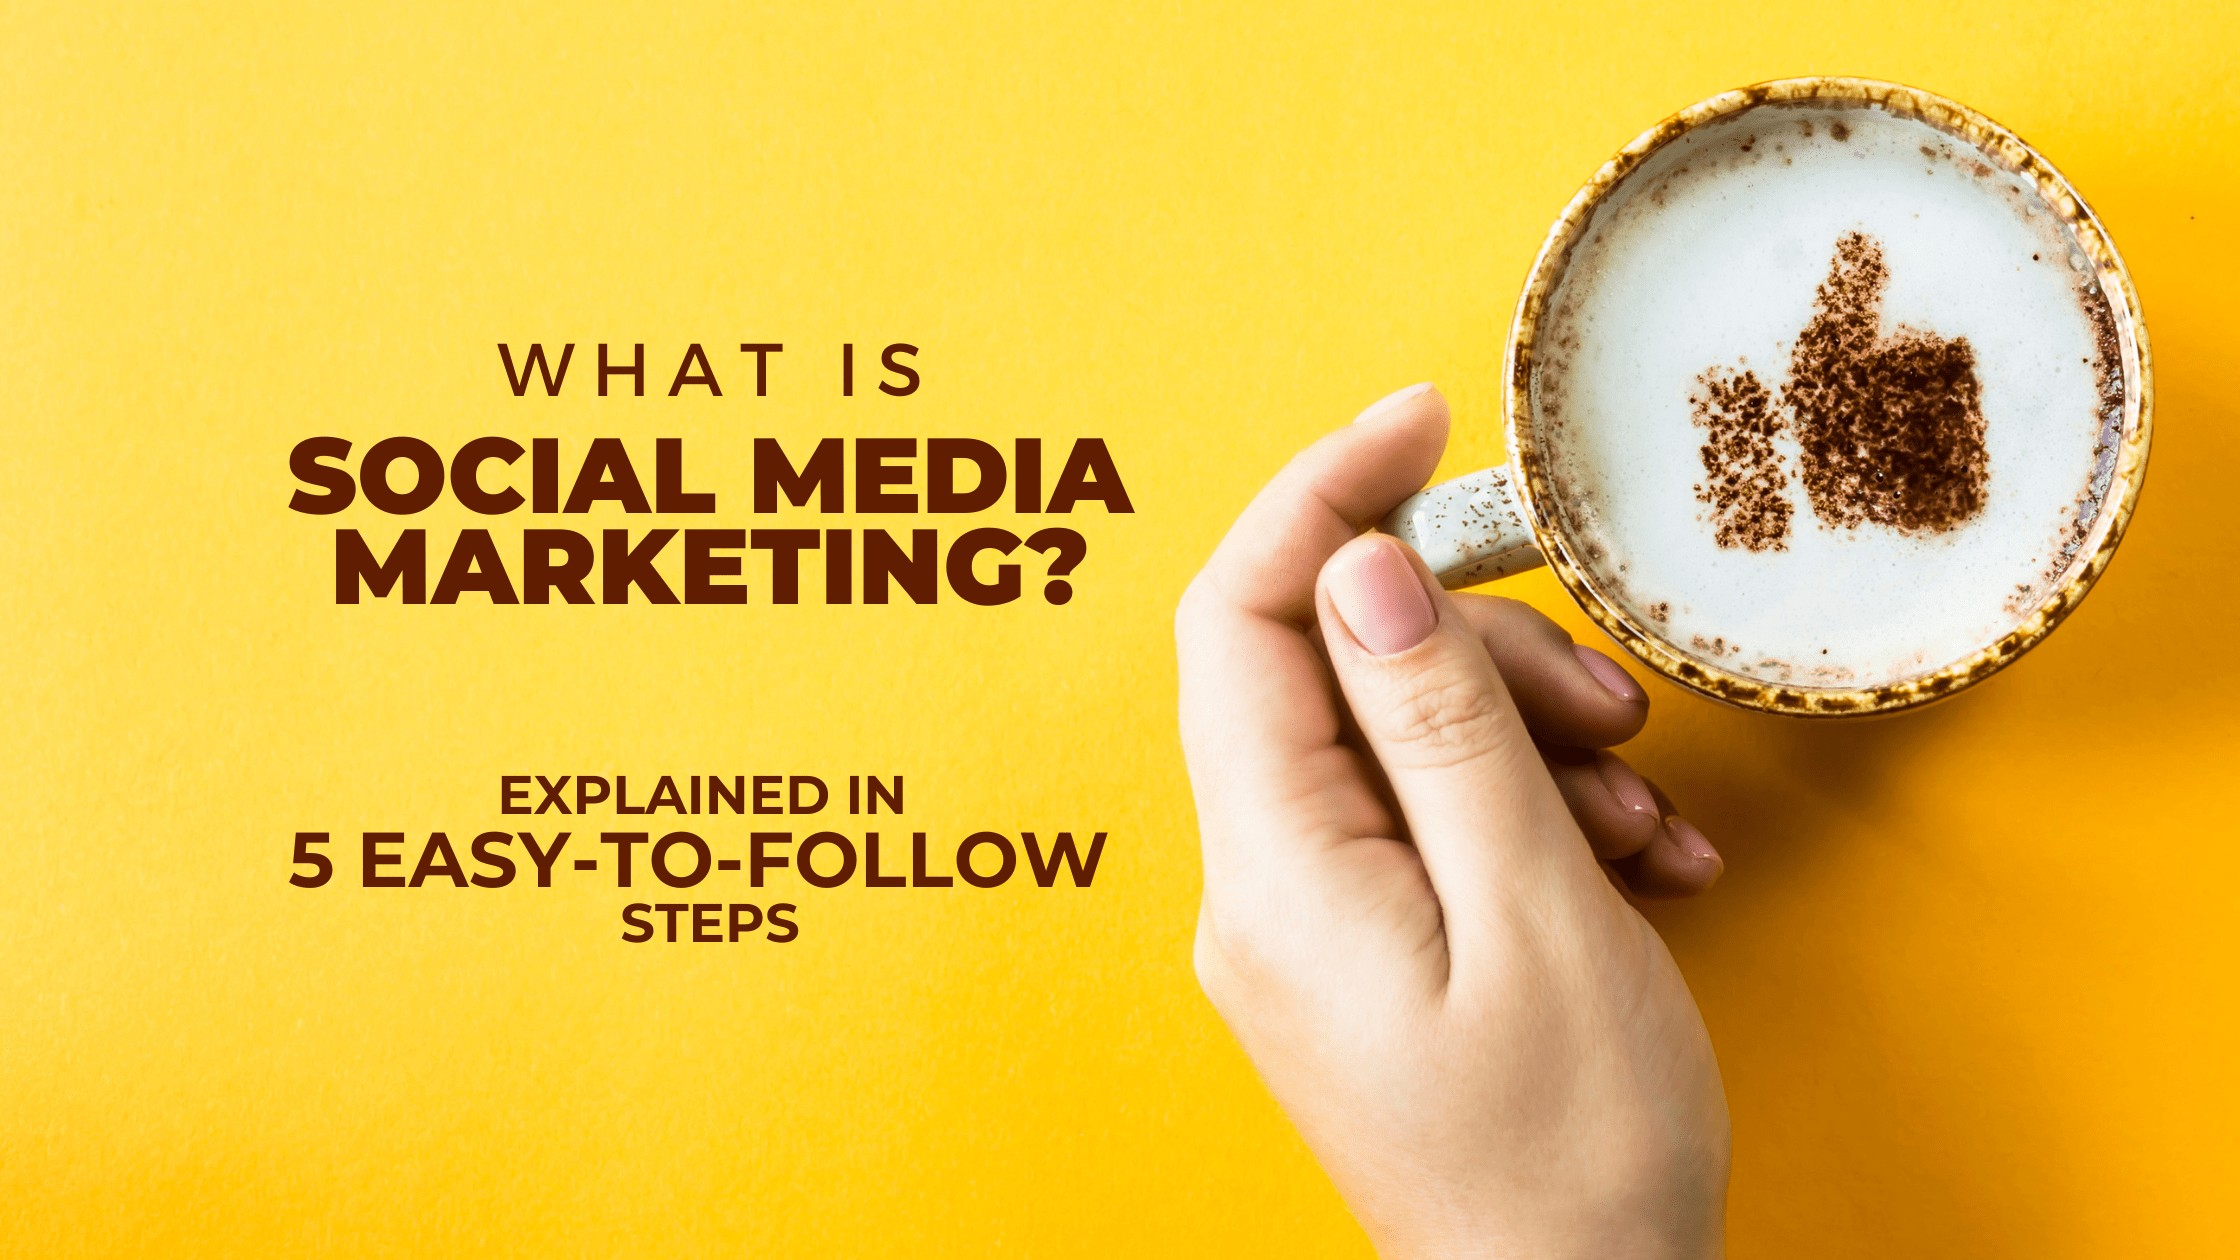 What Is Social Media Marketing? Explained In 5 Easy To Follow Steps